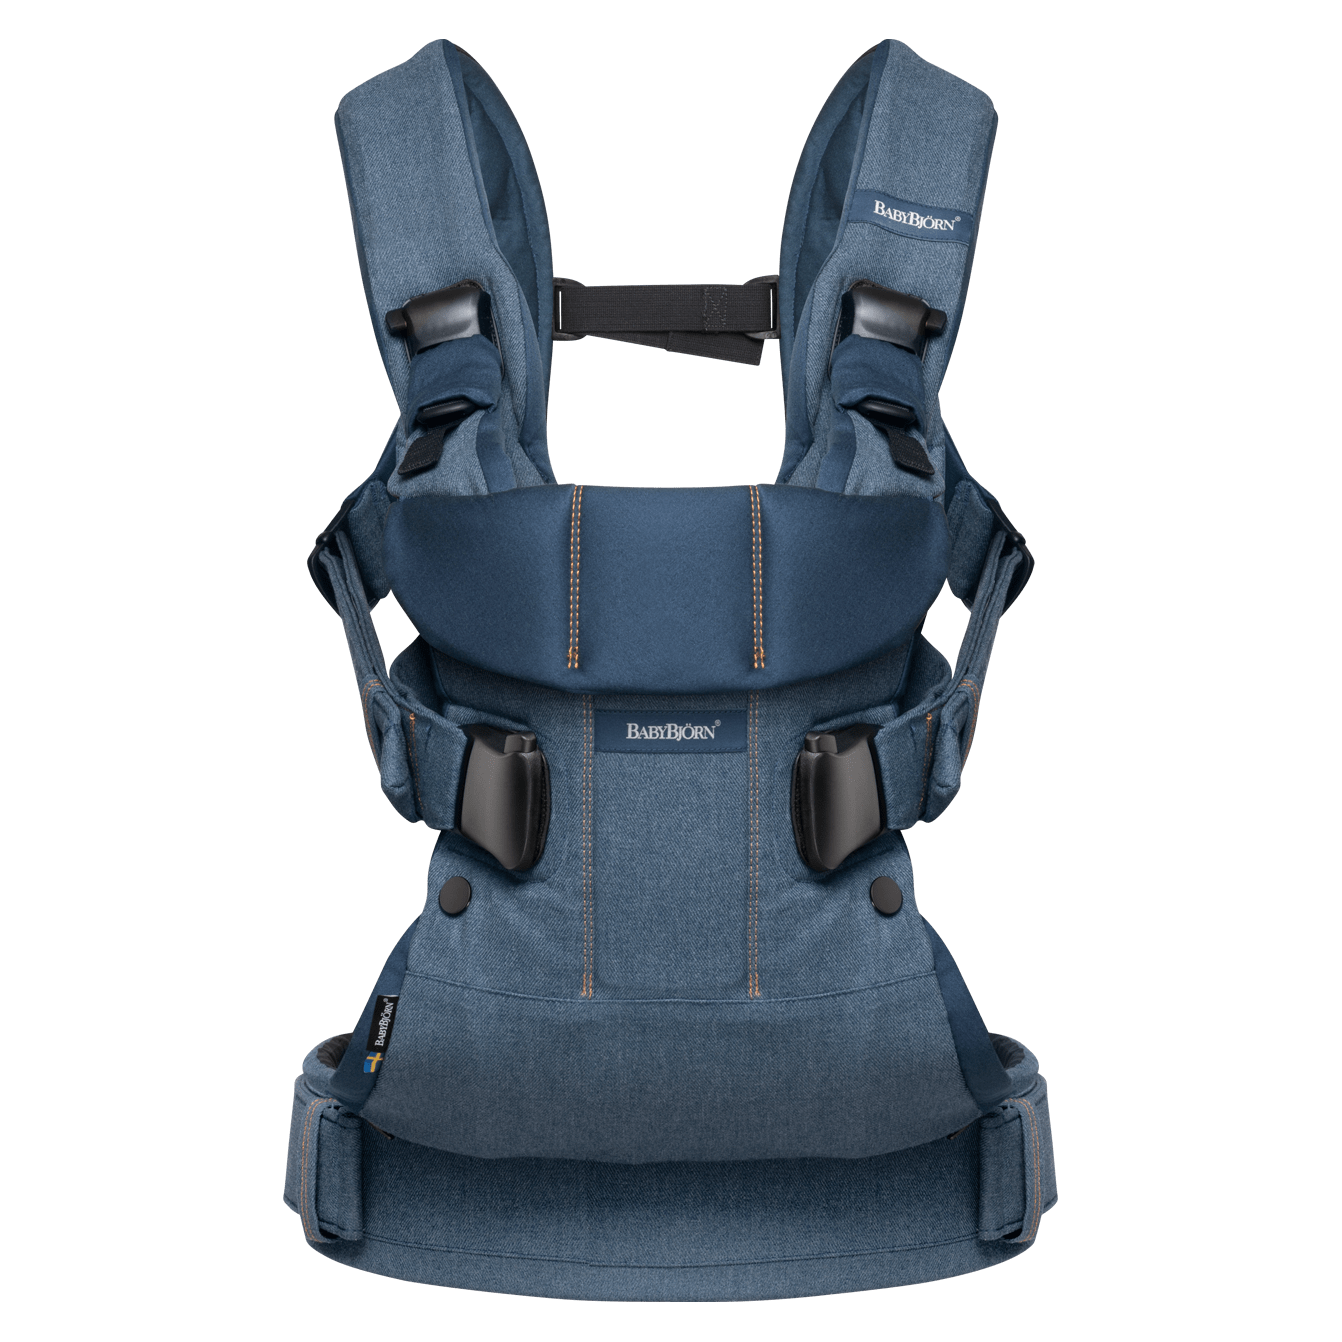 Buy Ergonomic Baby Carrier One in BABYBJÖRN Shop